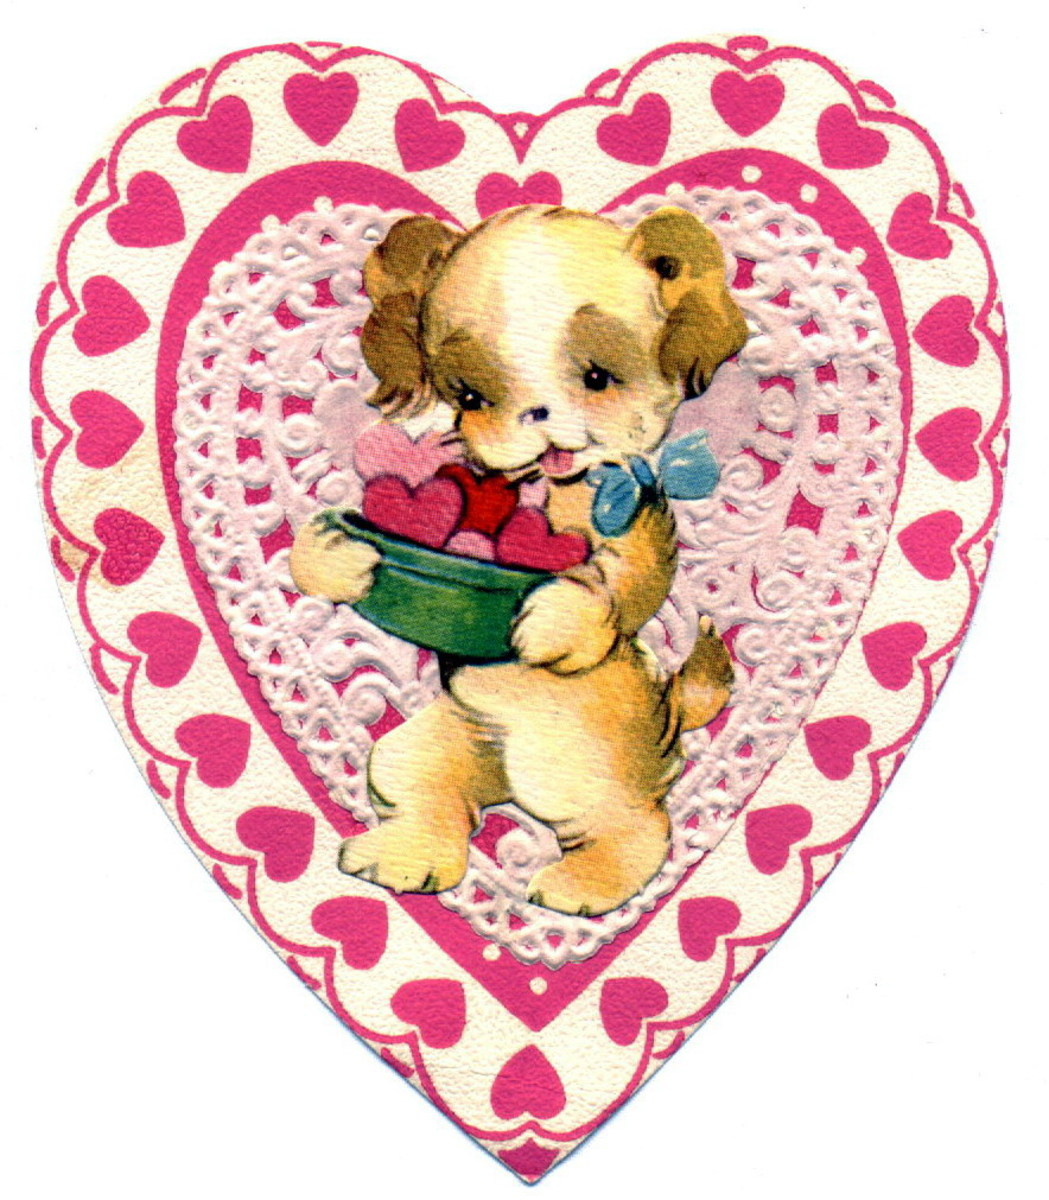 Vintage puppy in pink lace heart Valentine's Day clip art